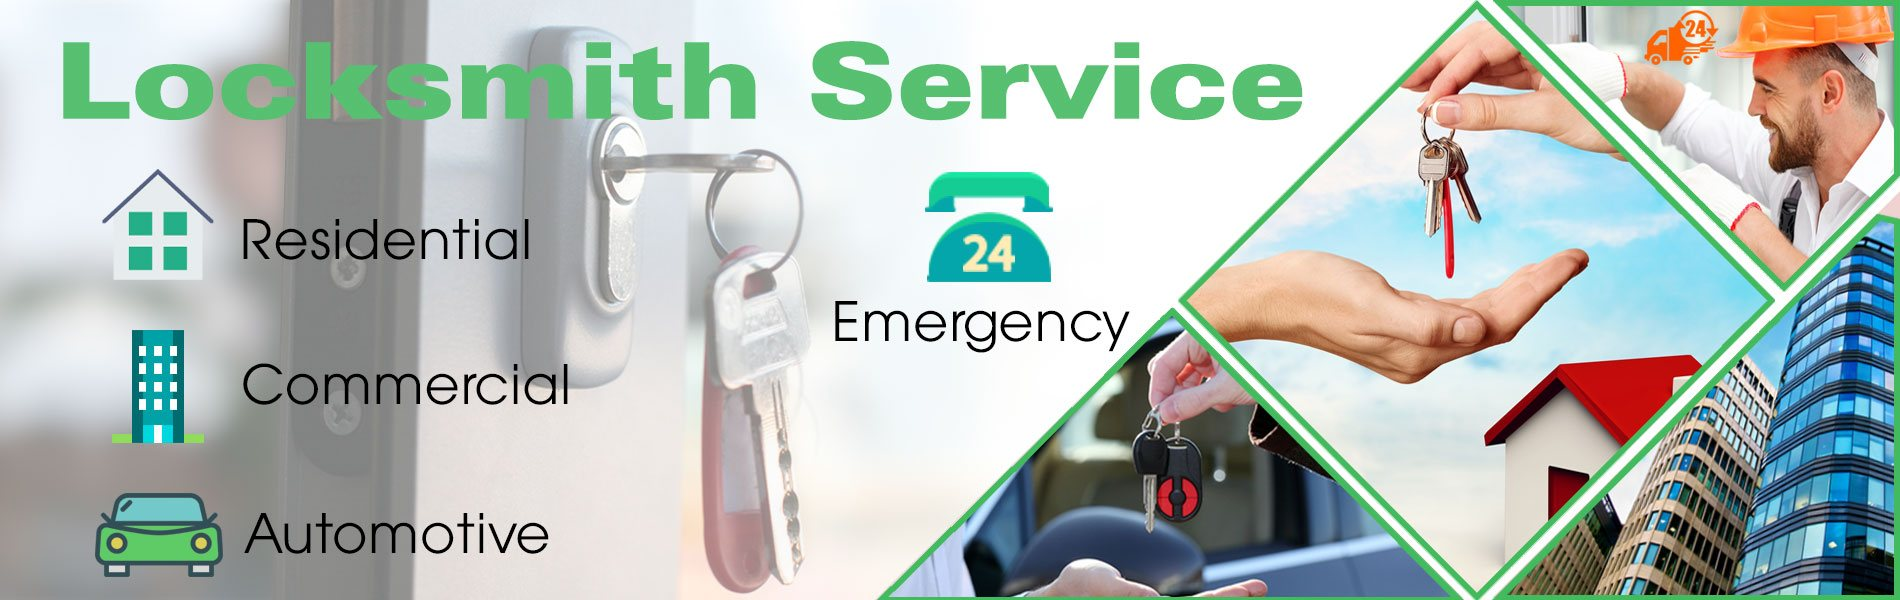 Lock Safe Services Whittier, CA 310-975-3534